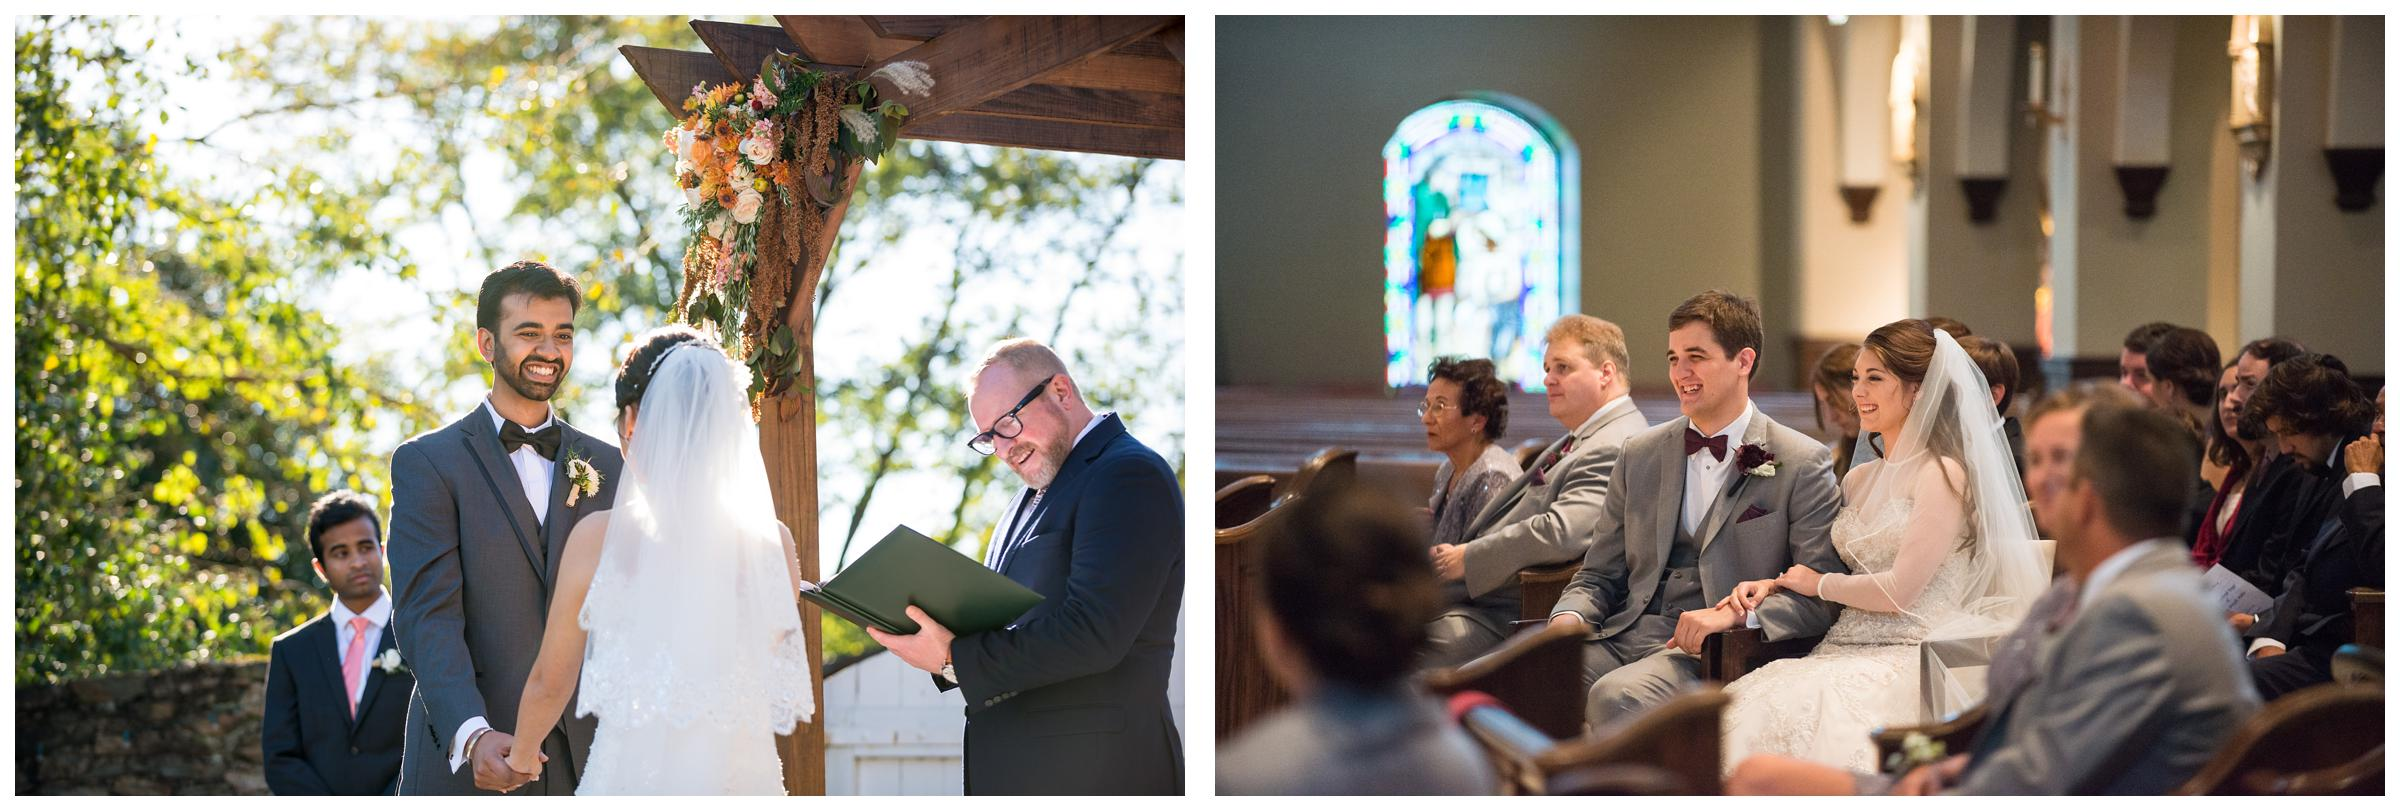 laughter during outdoor and church wedding ceremonies